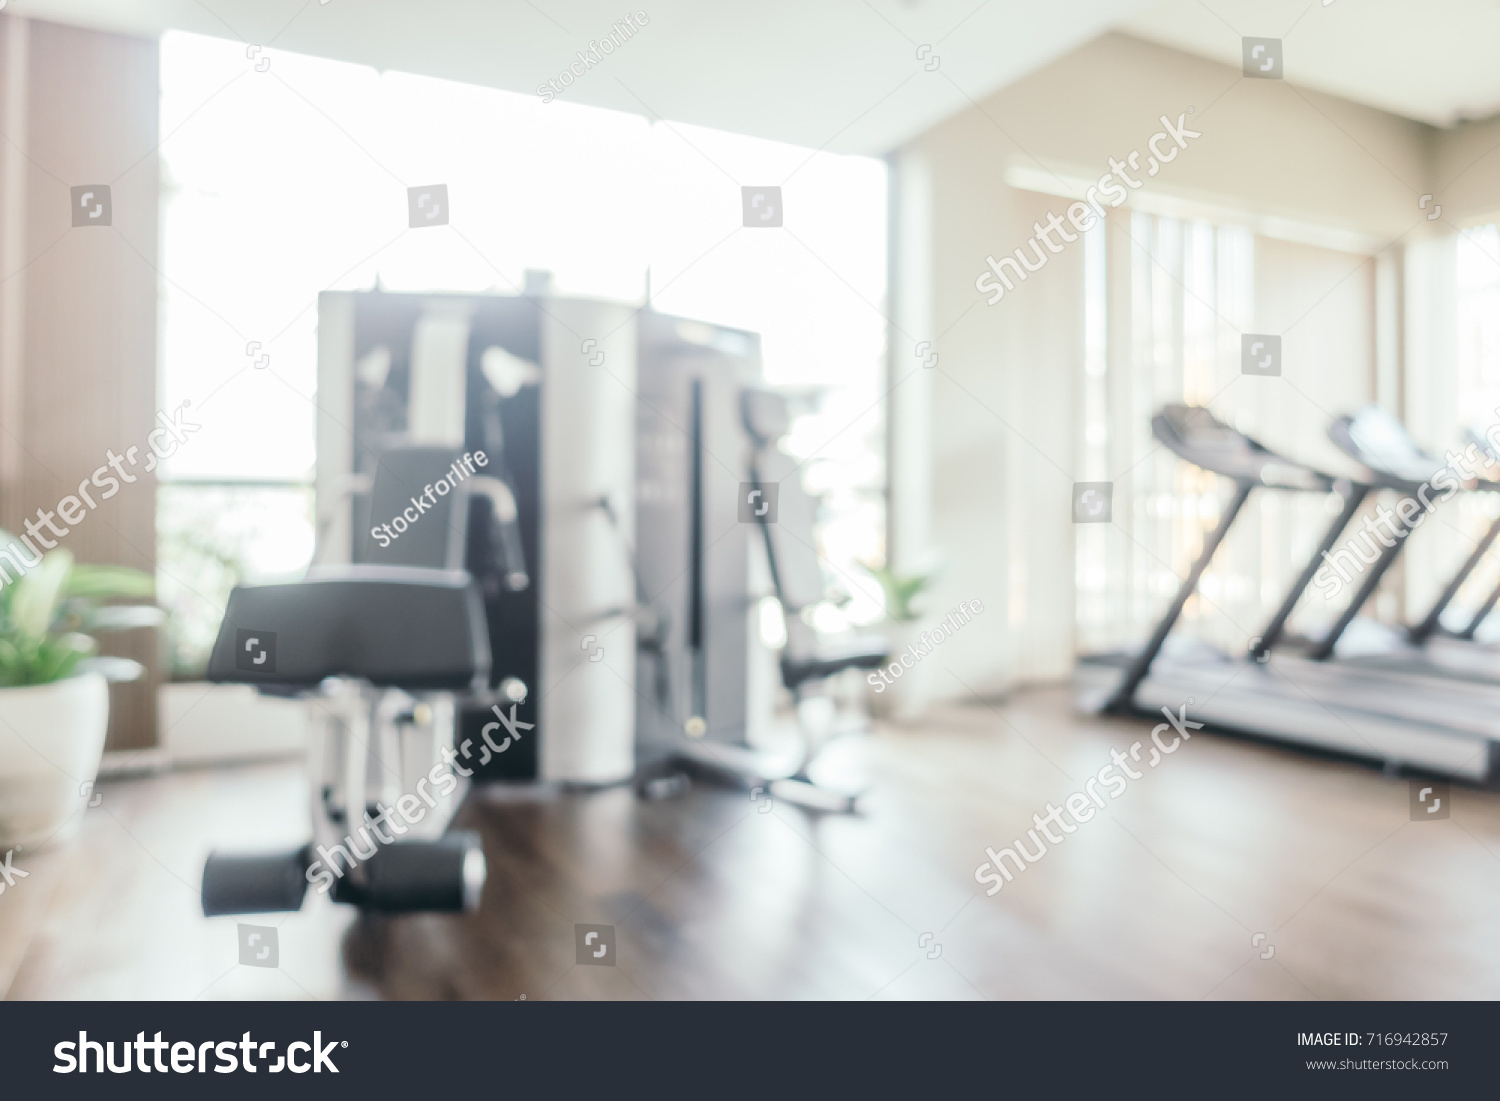 Abstract Blur Fitness Equipment Gym Room Stock Photo (Royalty Free ...